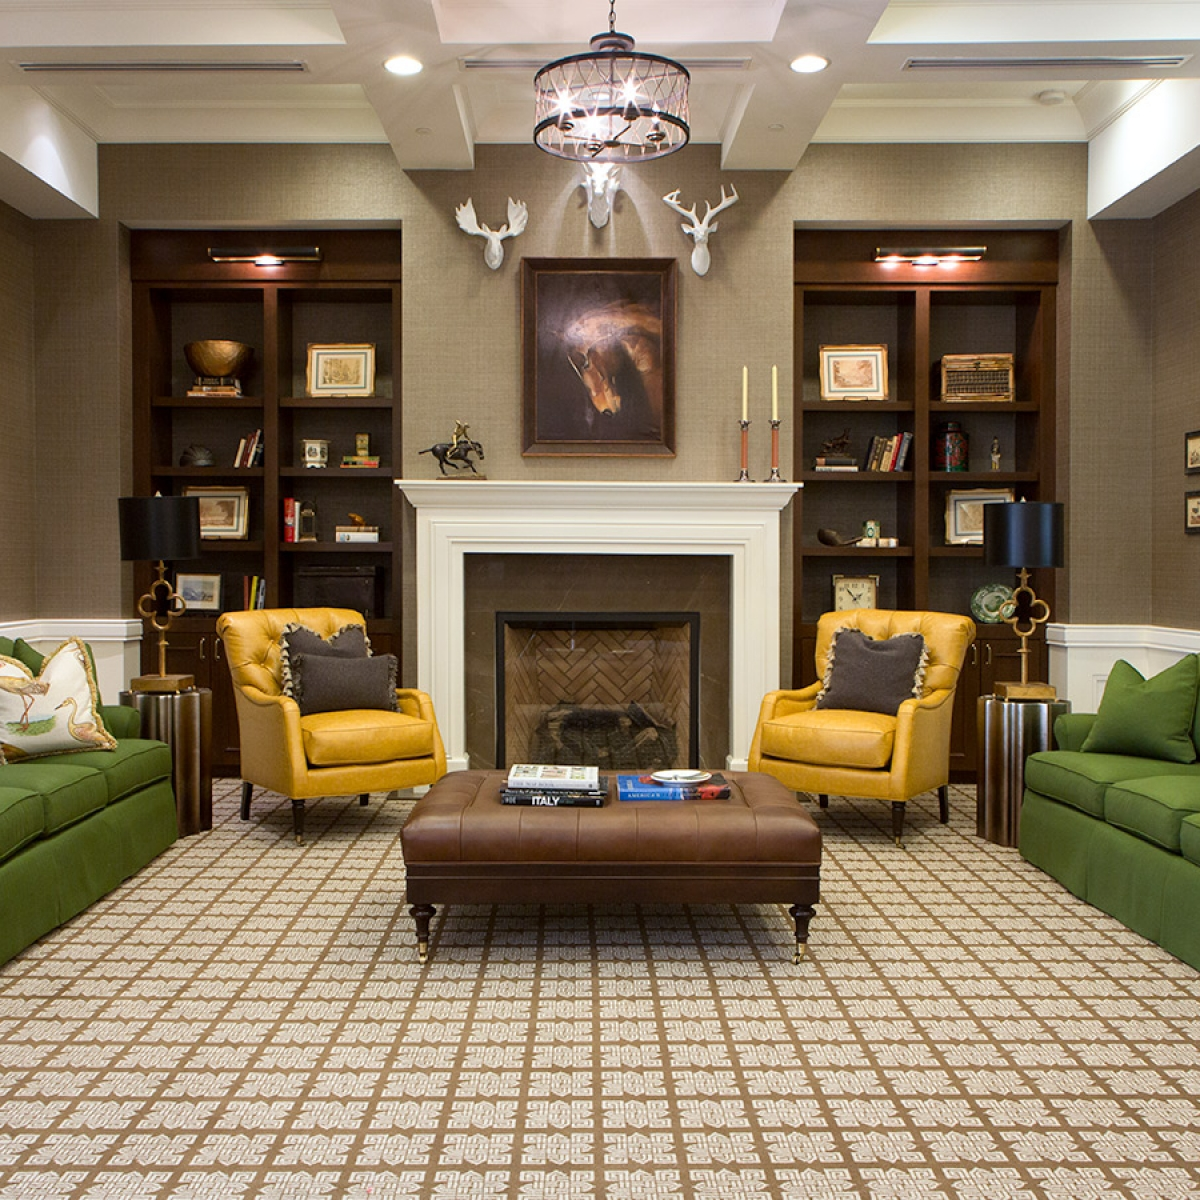 The Balfour | The Interior